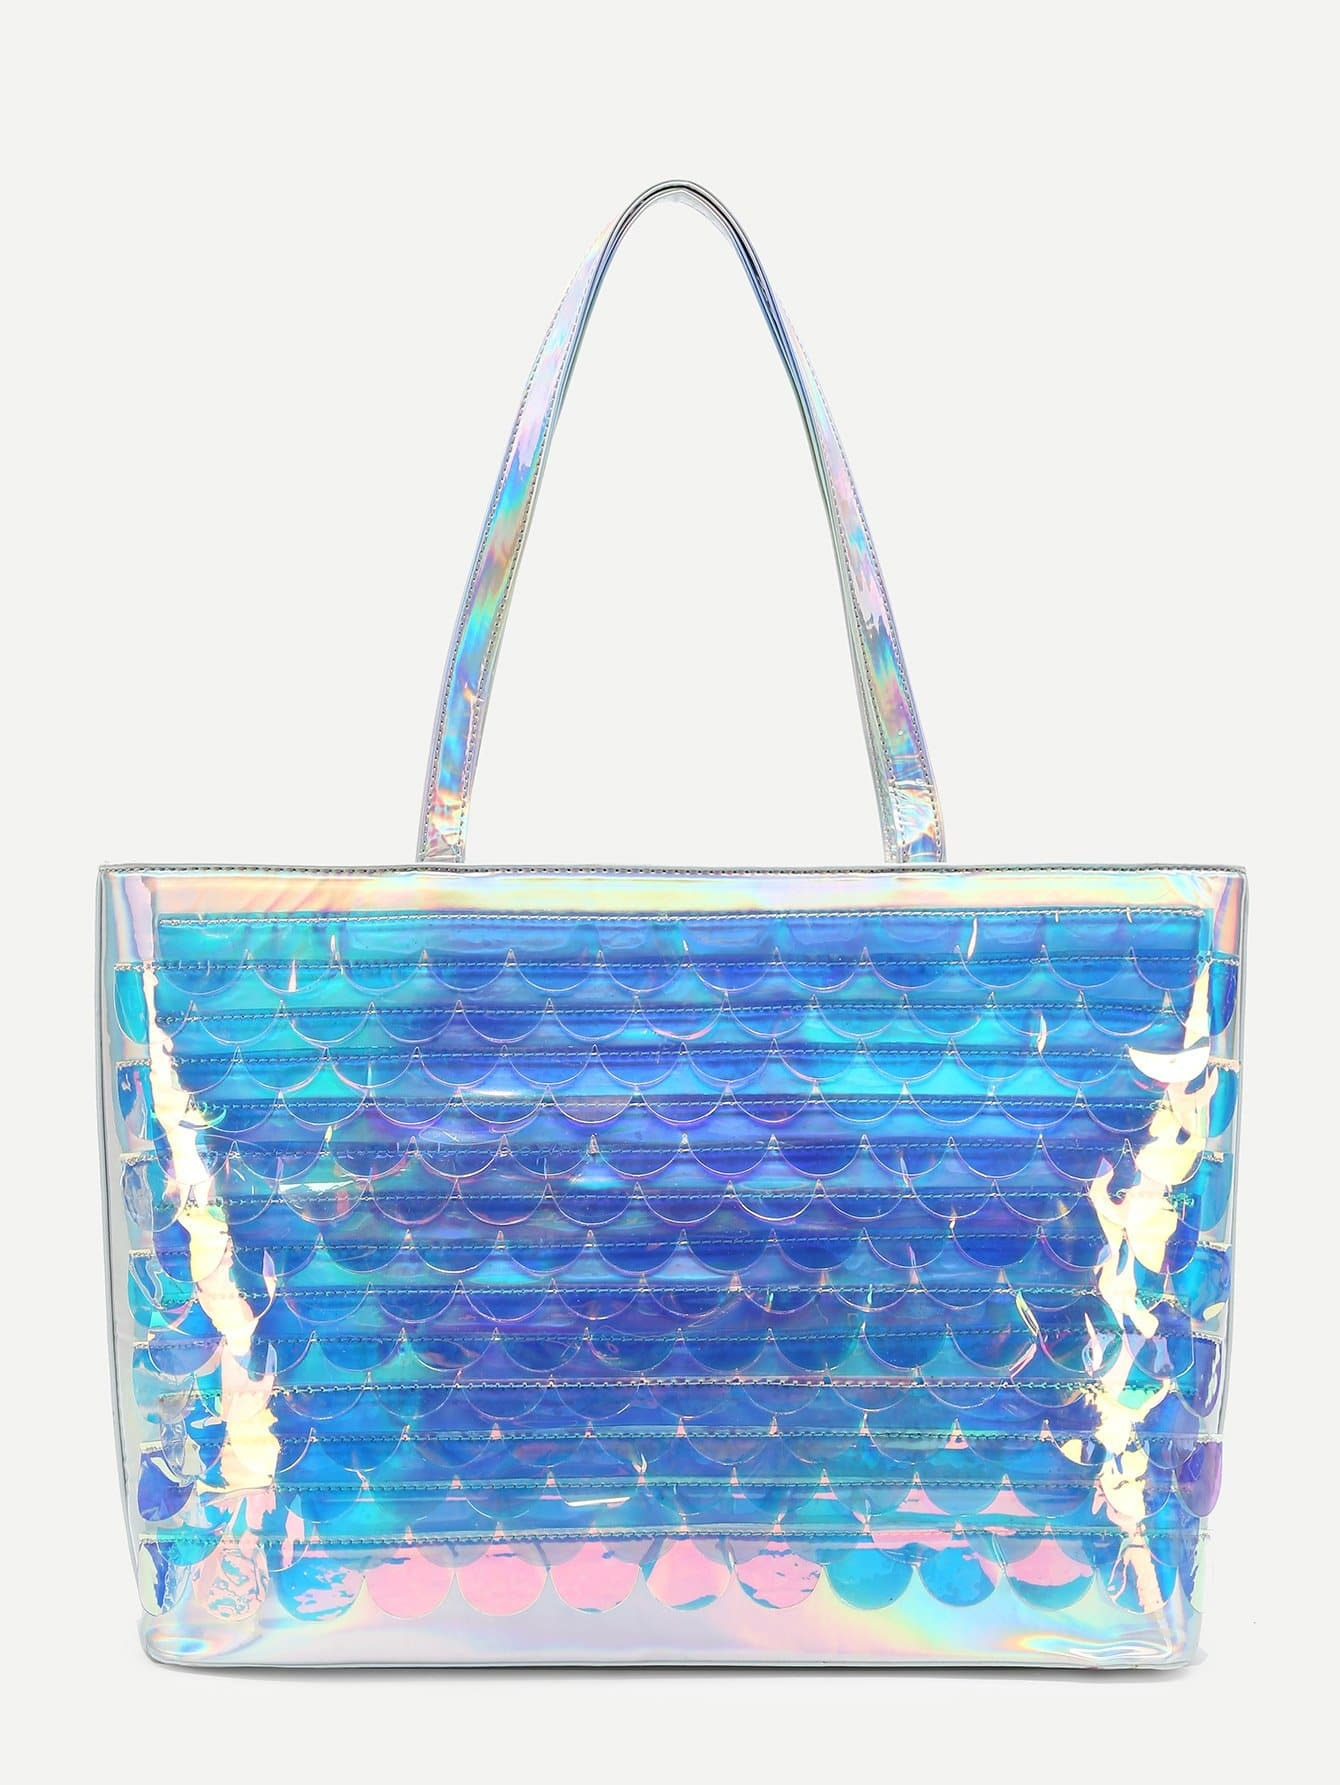 Scale Pattern Iridescent Tote Bag iridescent tote bag